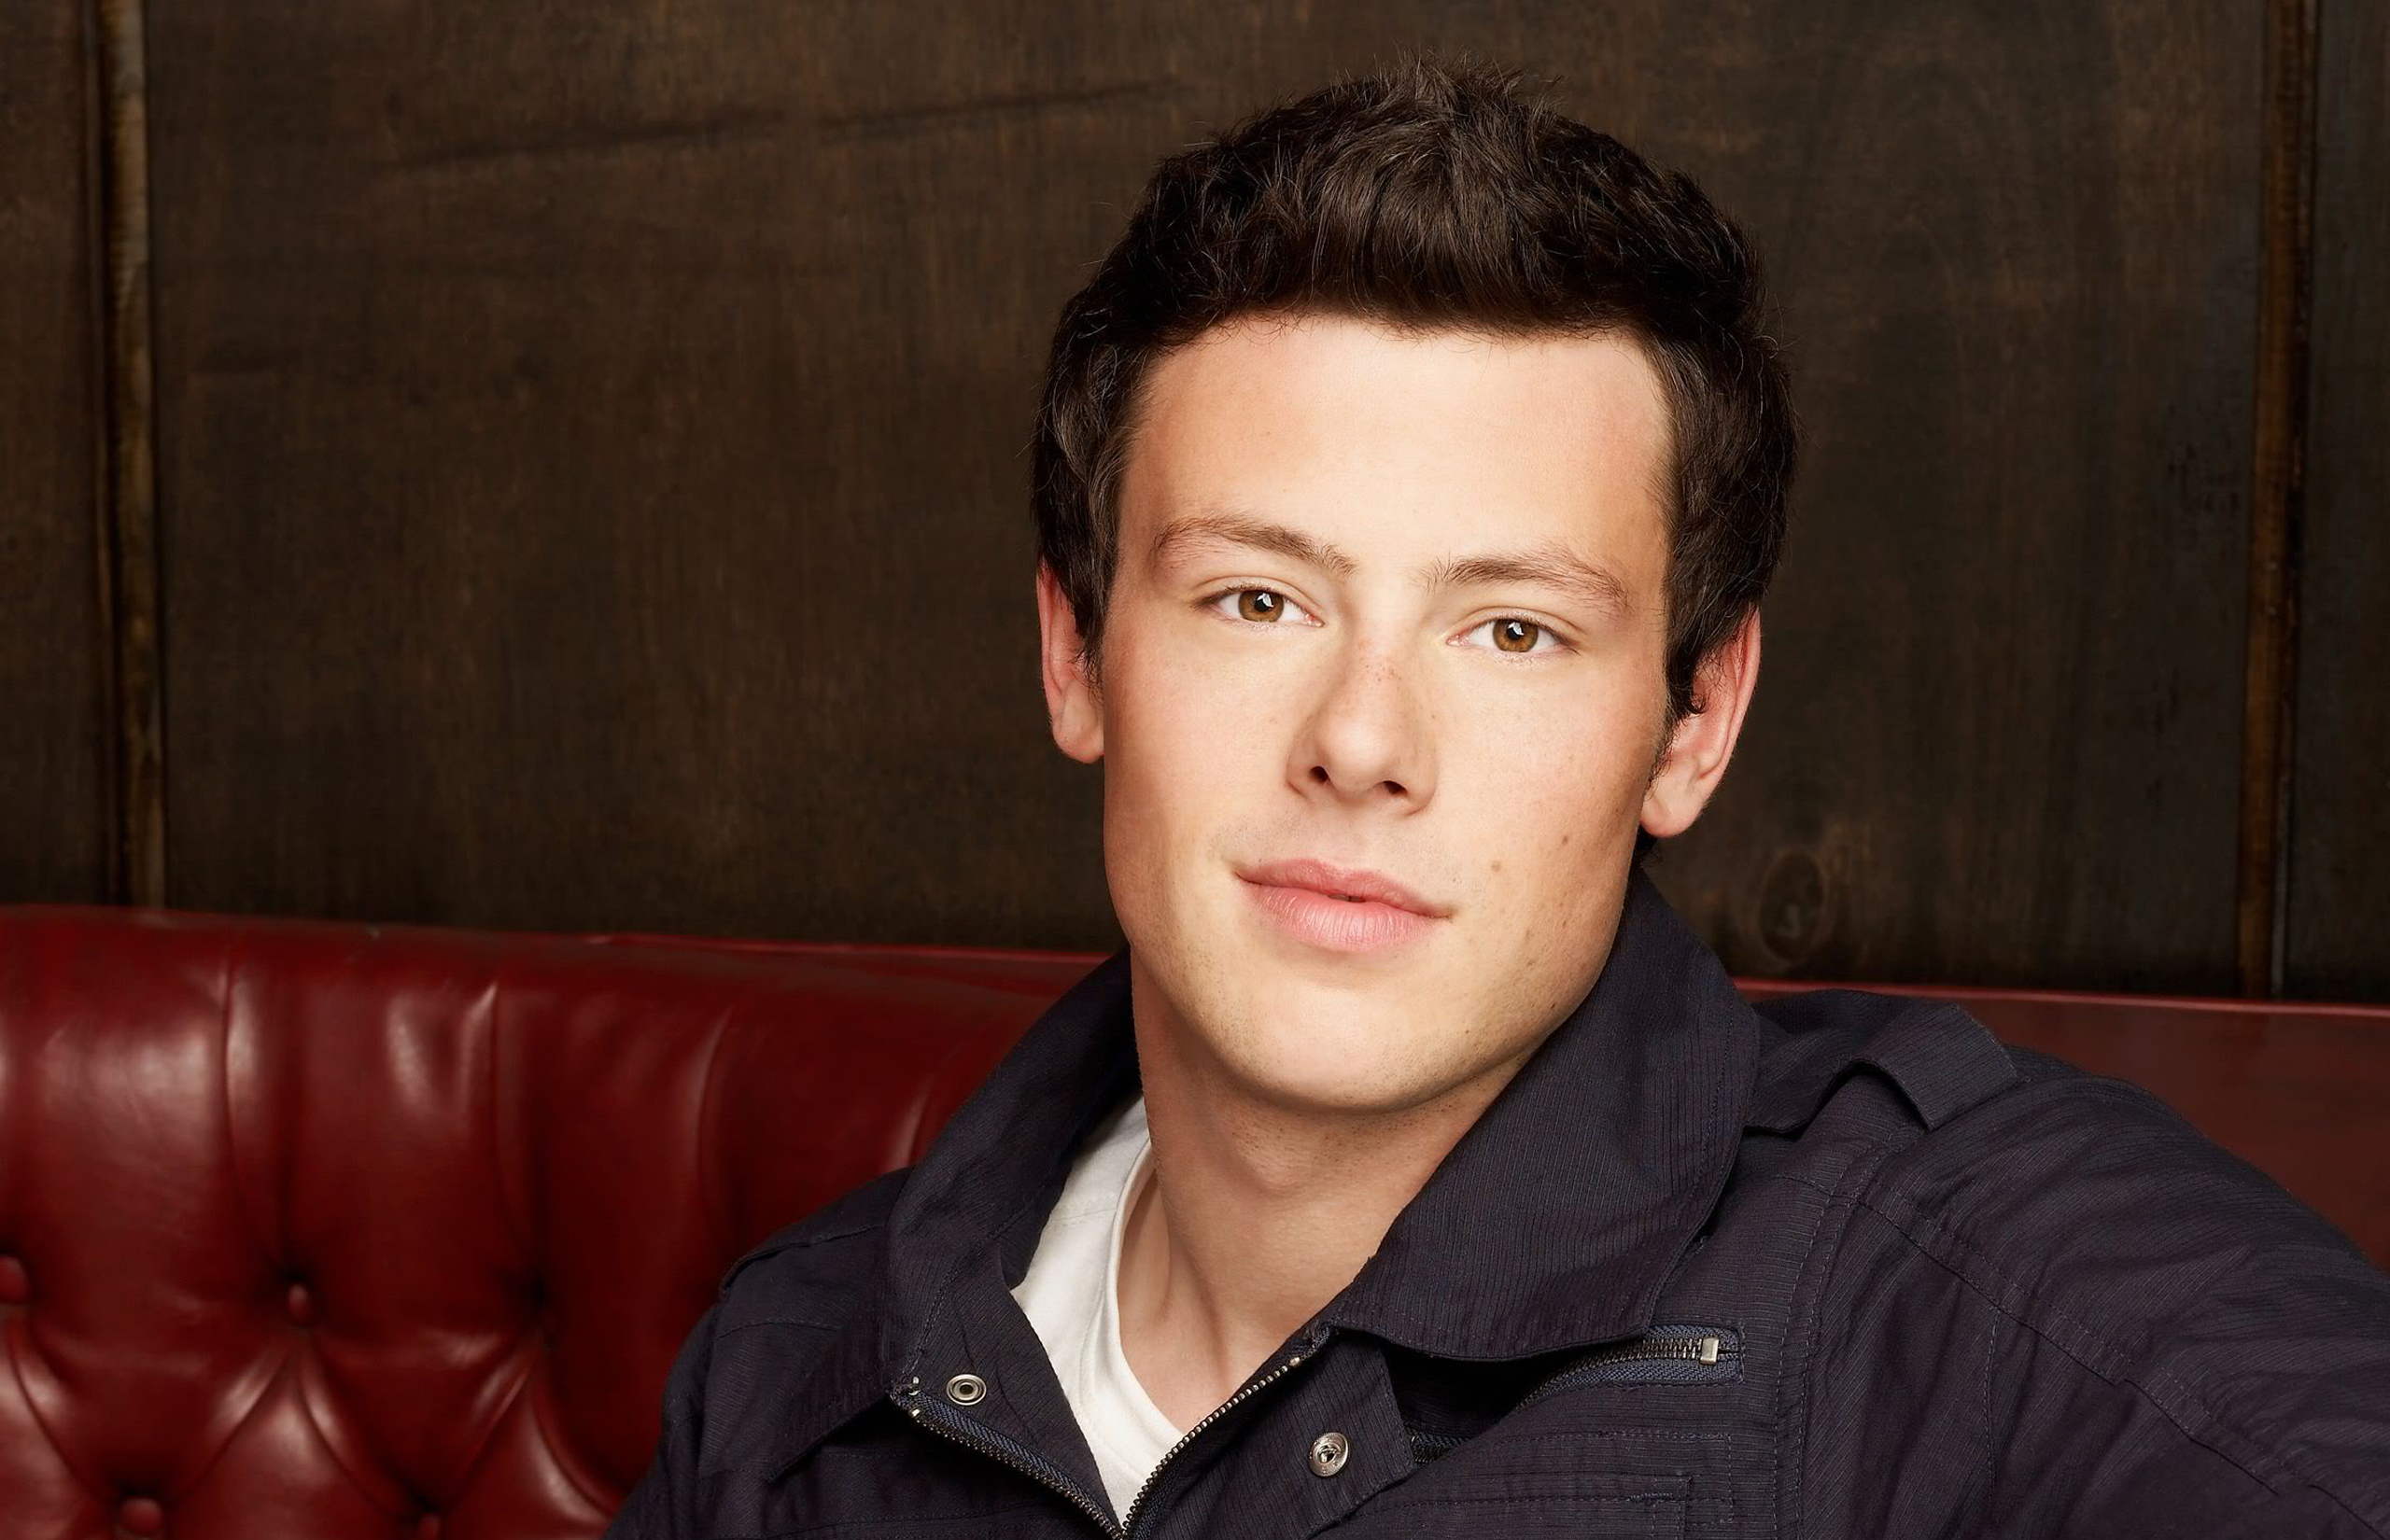 cory monteith wallpaper background hd 64054